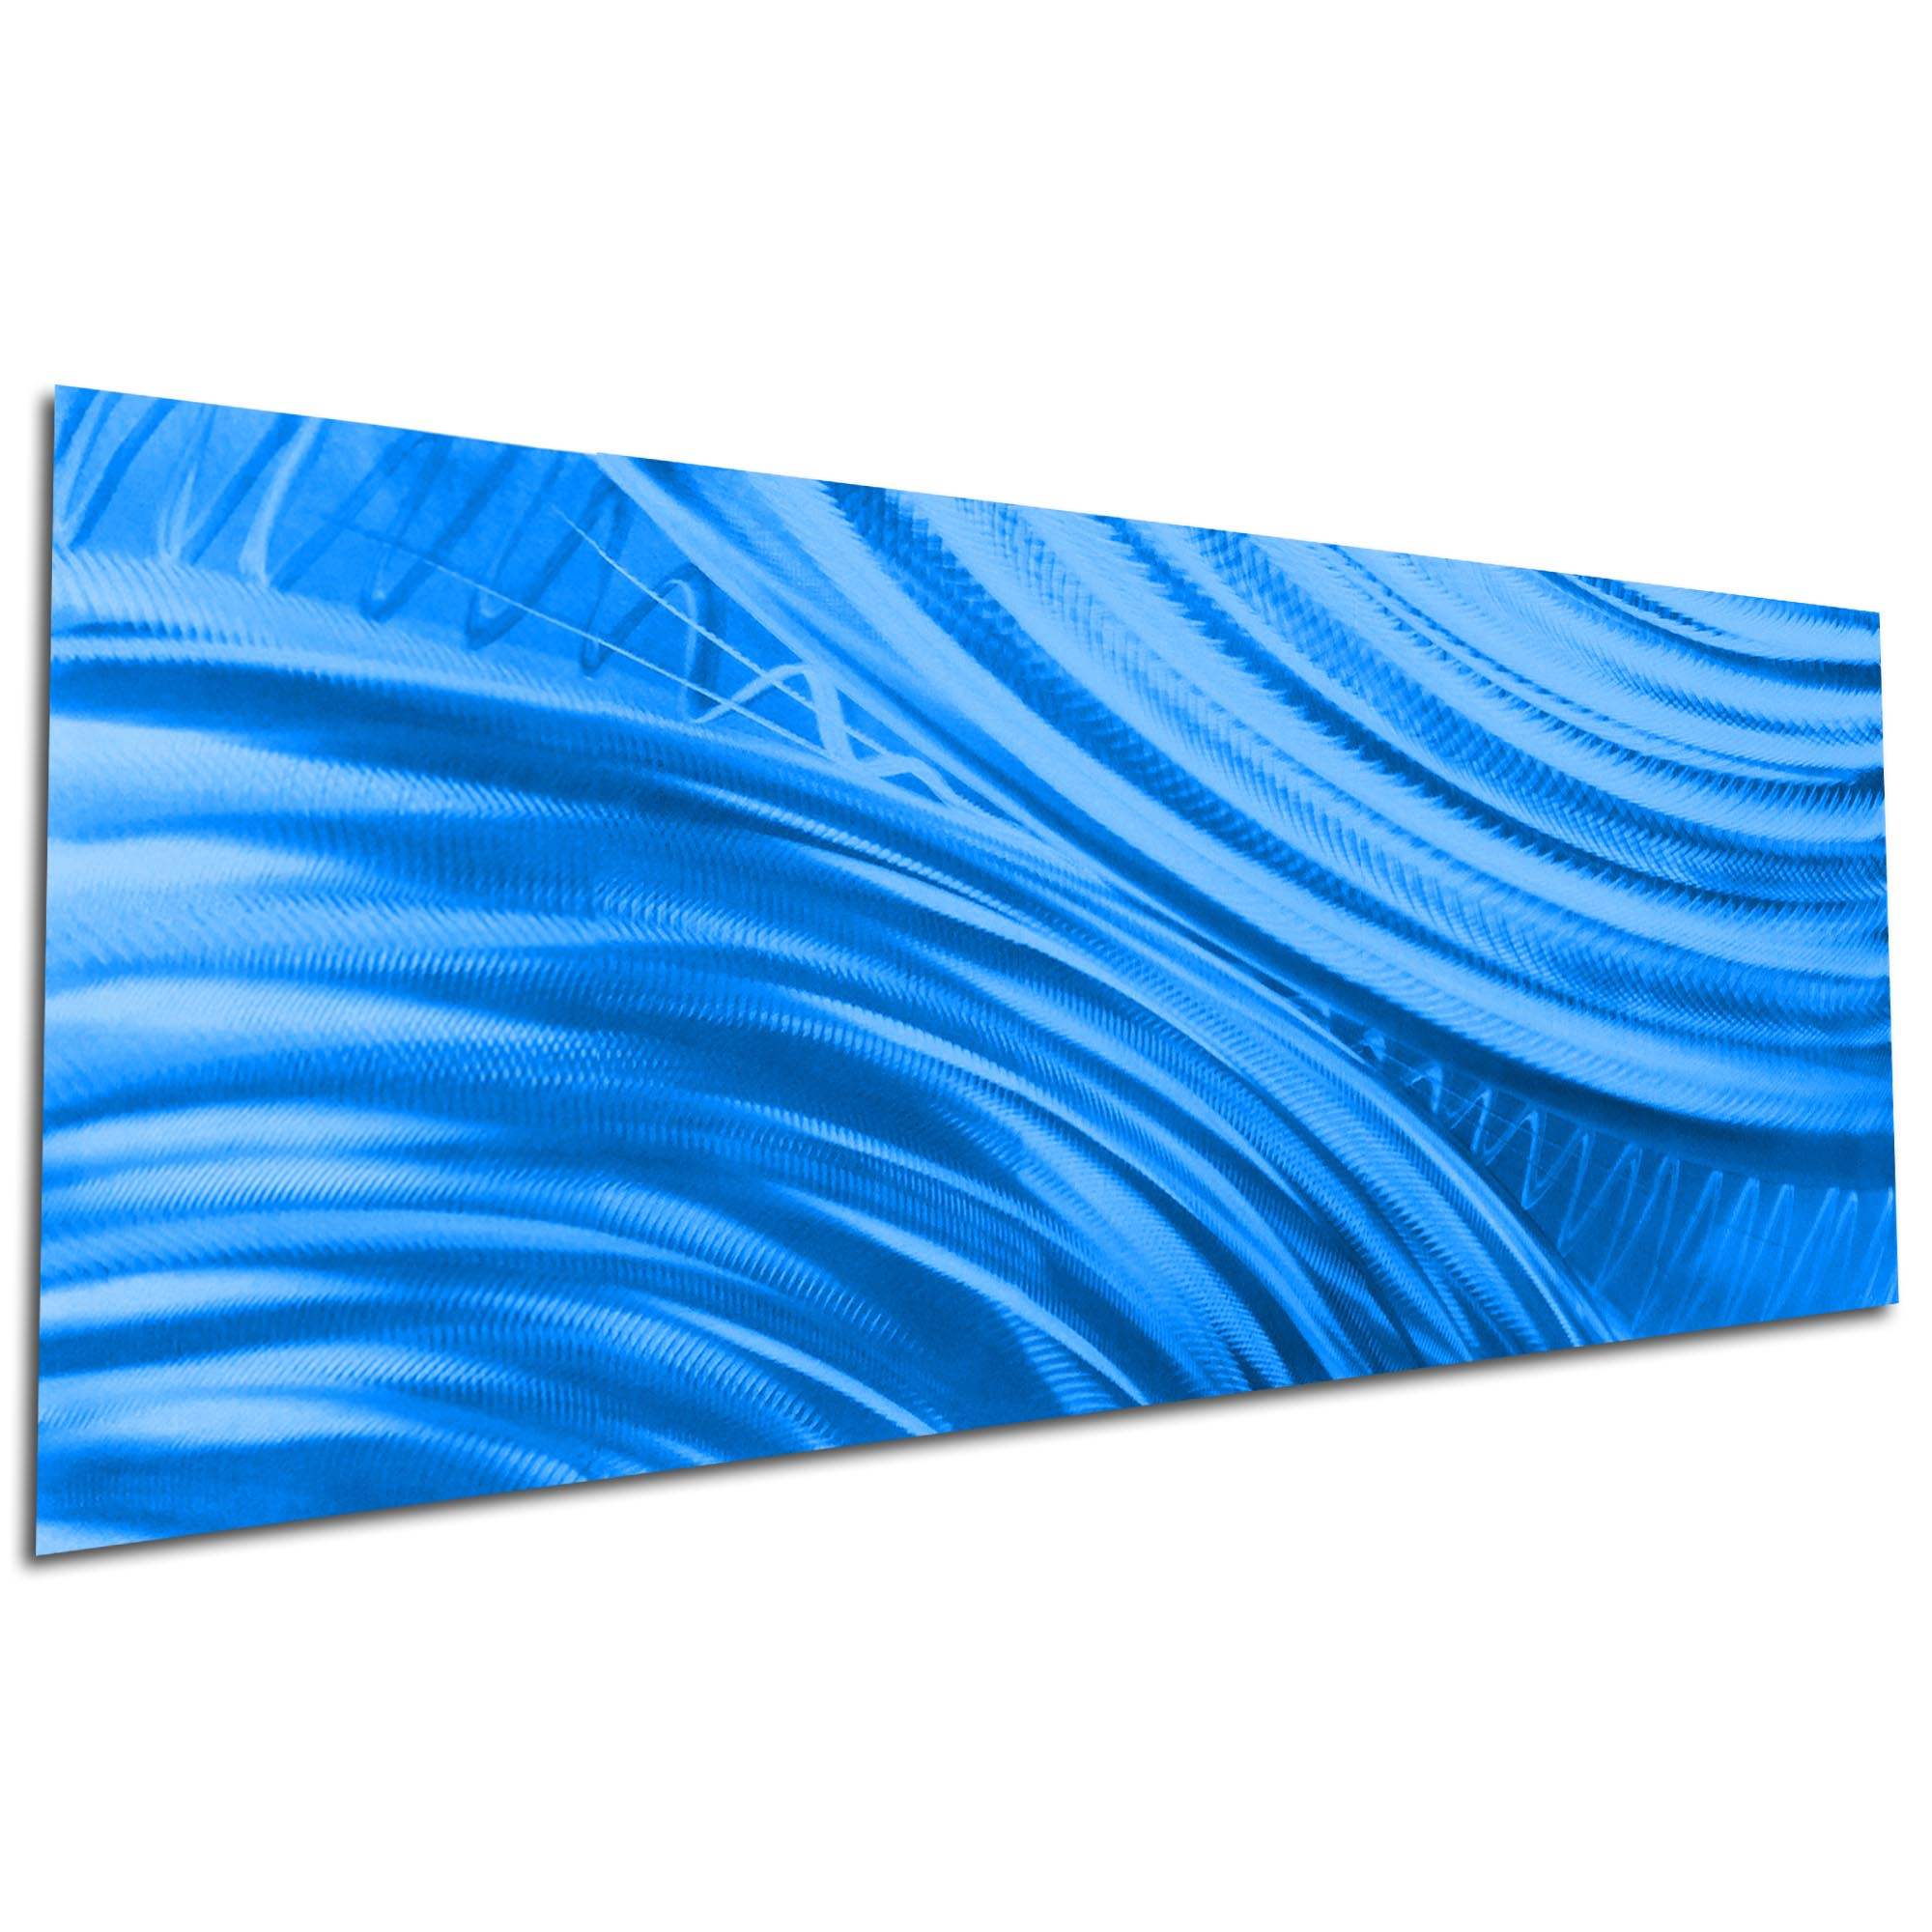 Moment of Impact Blue by Helena Martin - Original Abstract Art on Ground and Painted Metal - Image 3